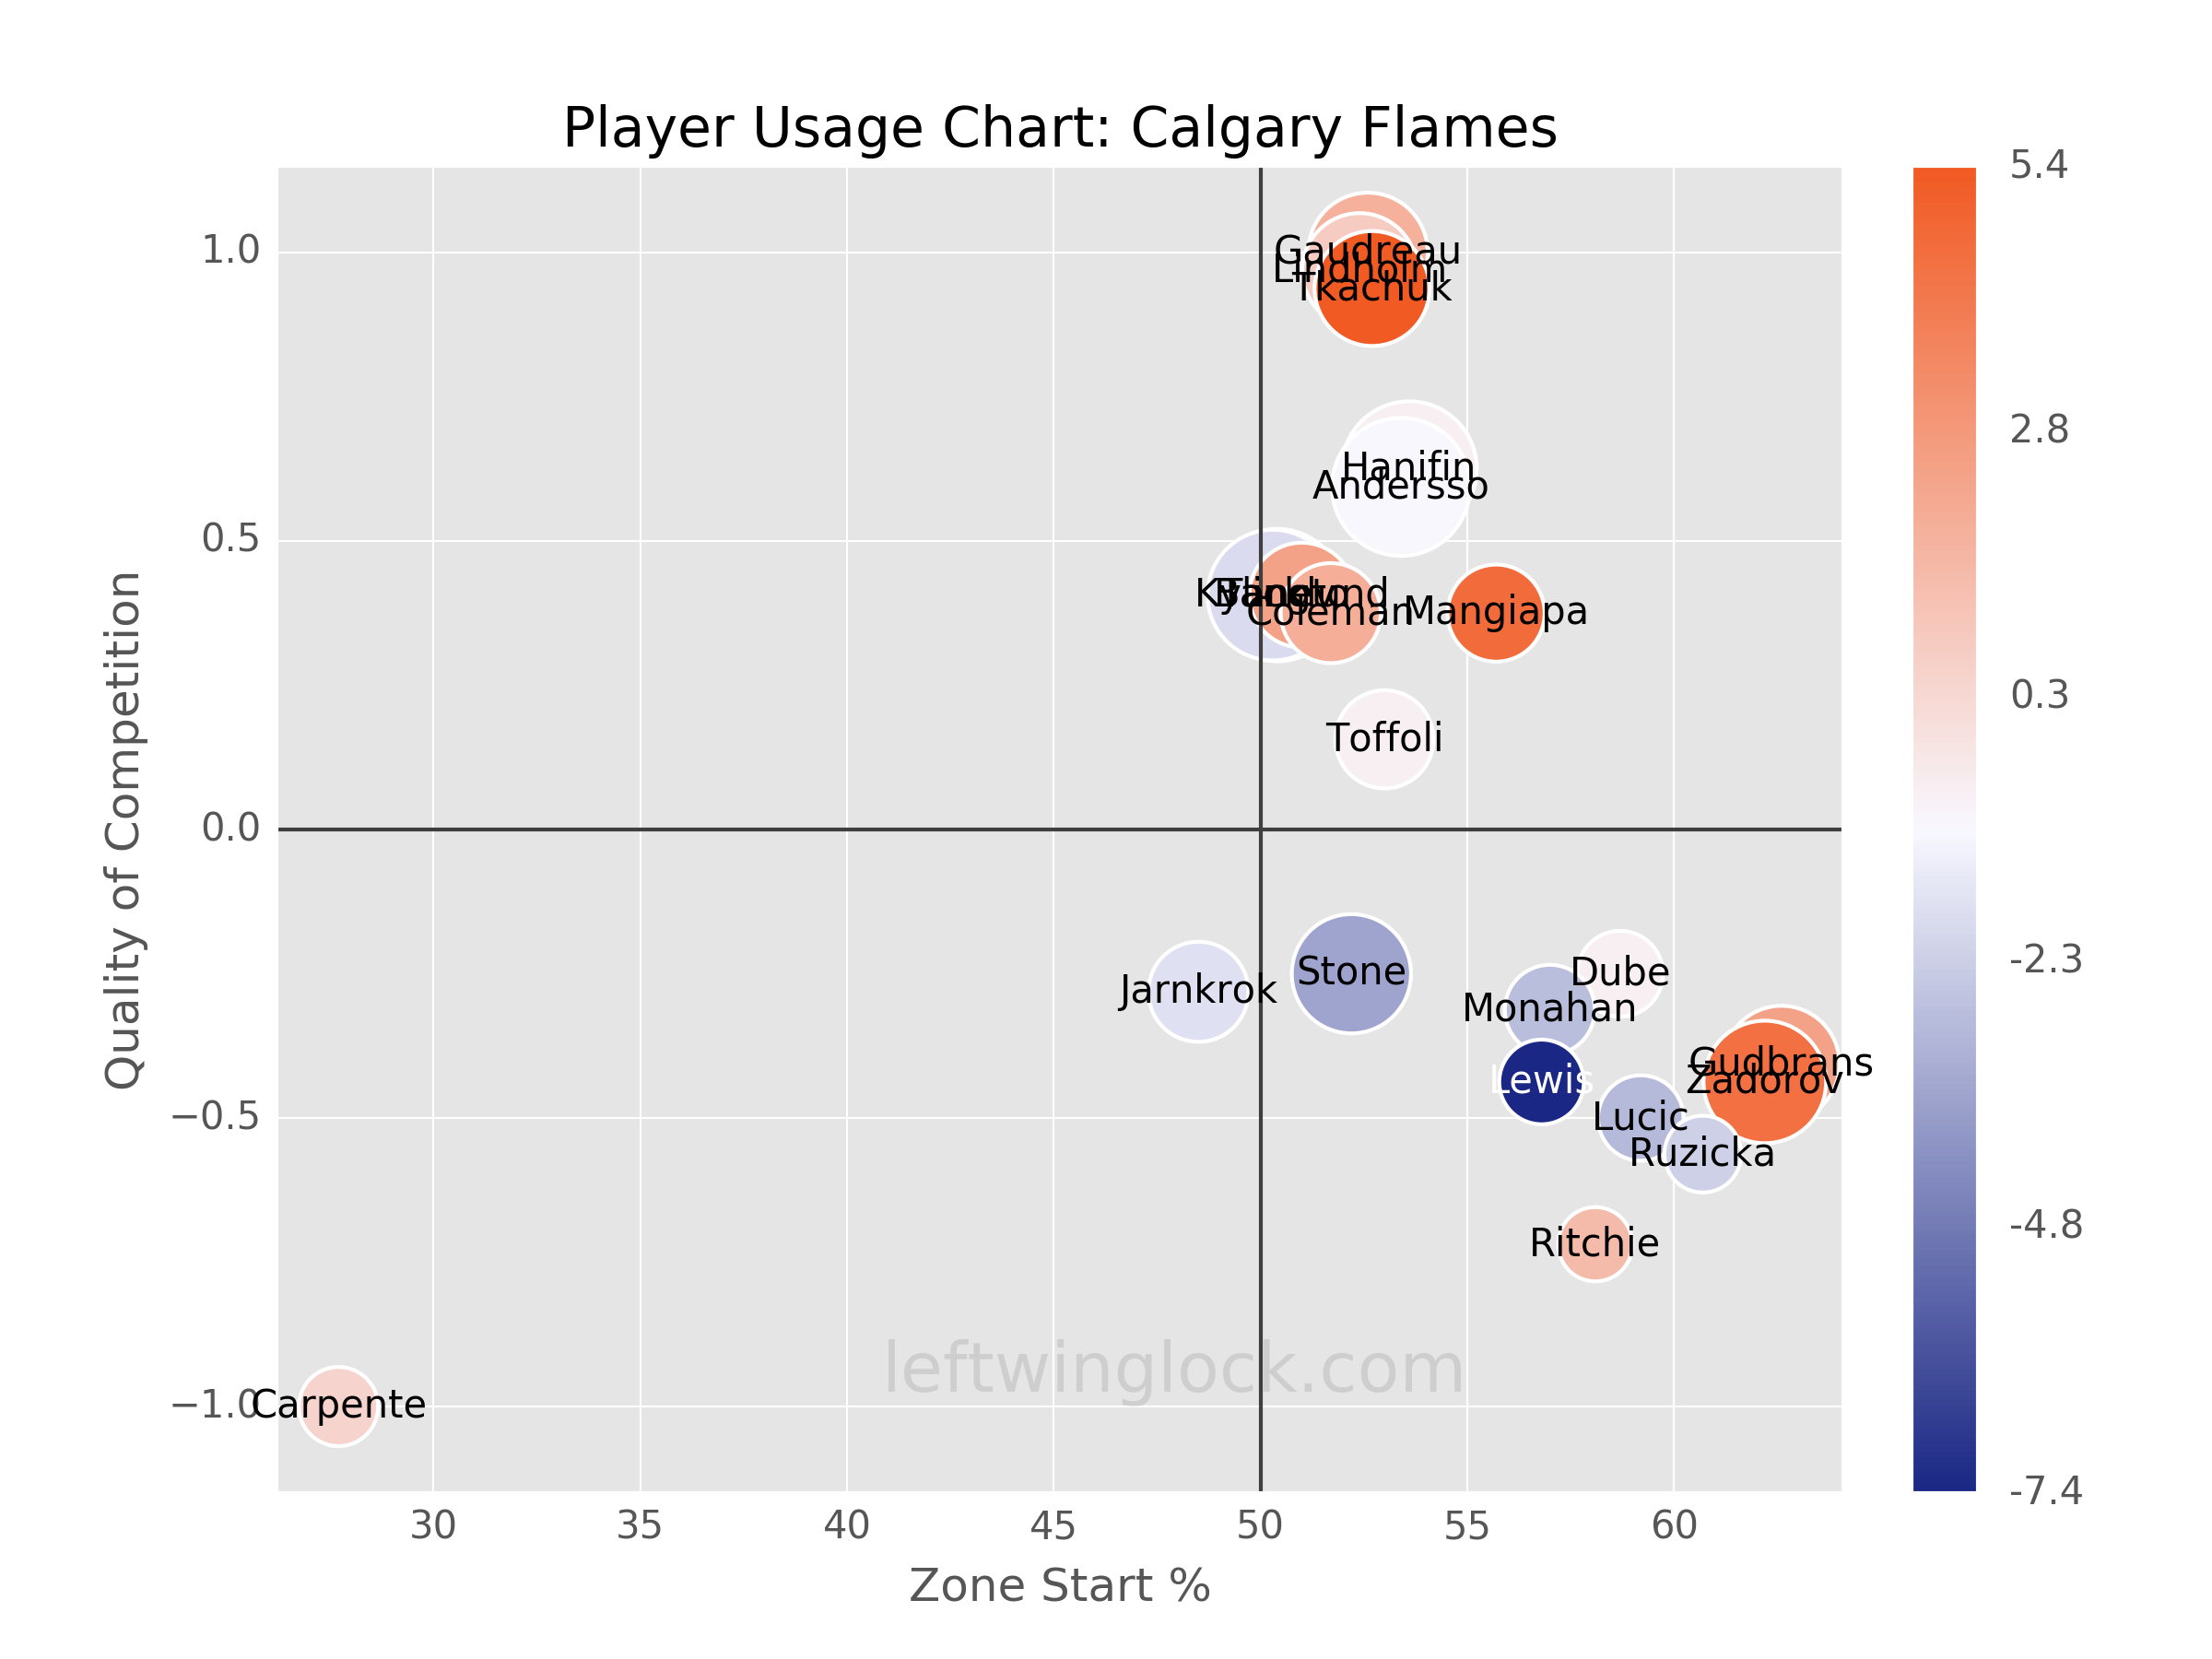 Calgary Flames Player Usage Chart